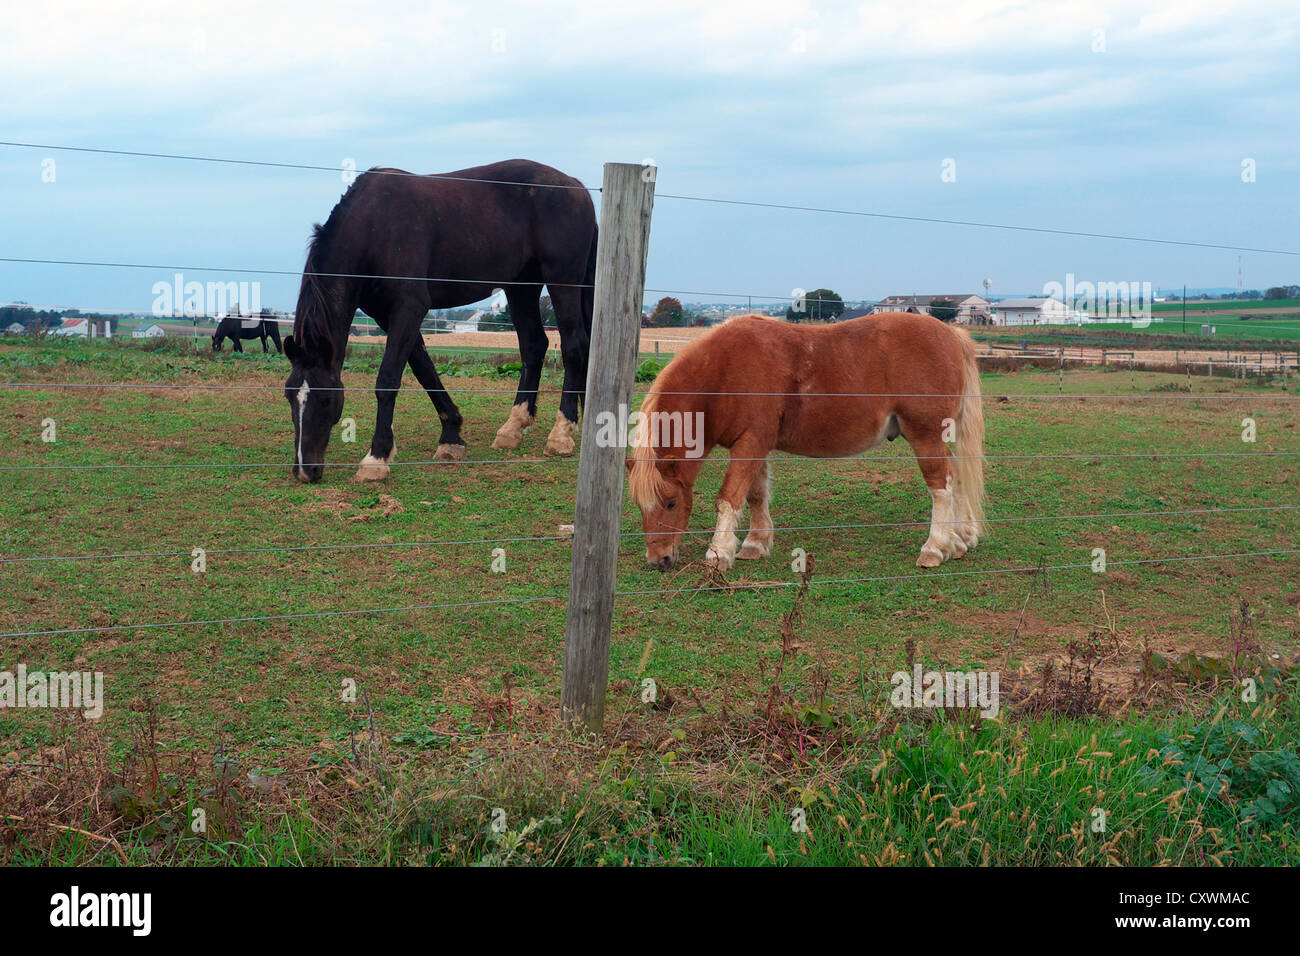 Two horse behind barbed wire fence in Lancaster, Pennsylvania - Stock Image